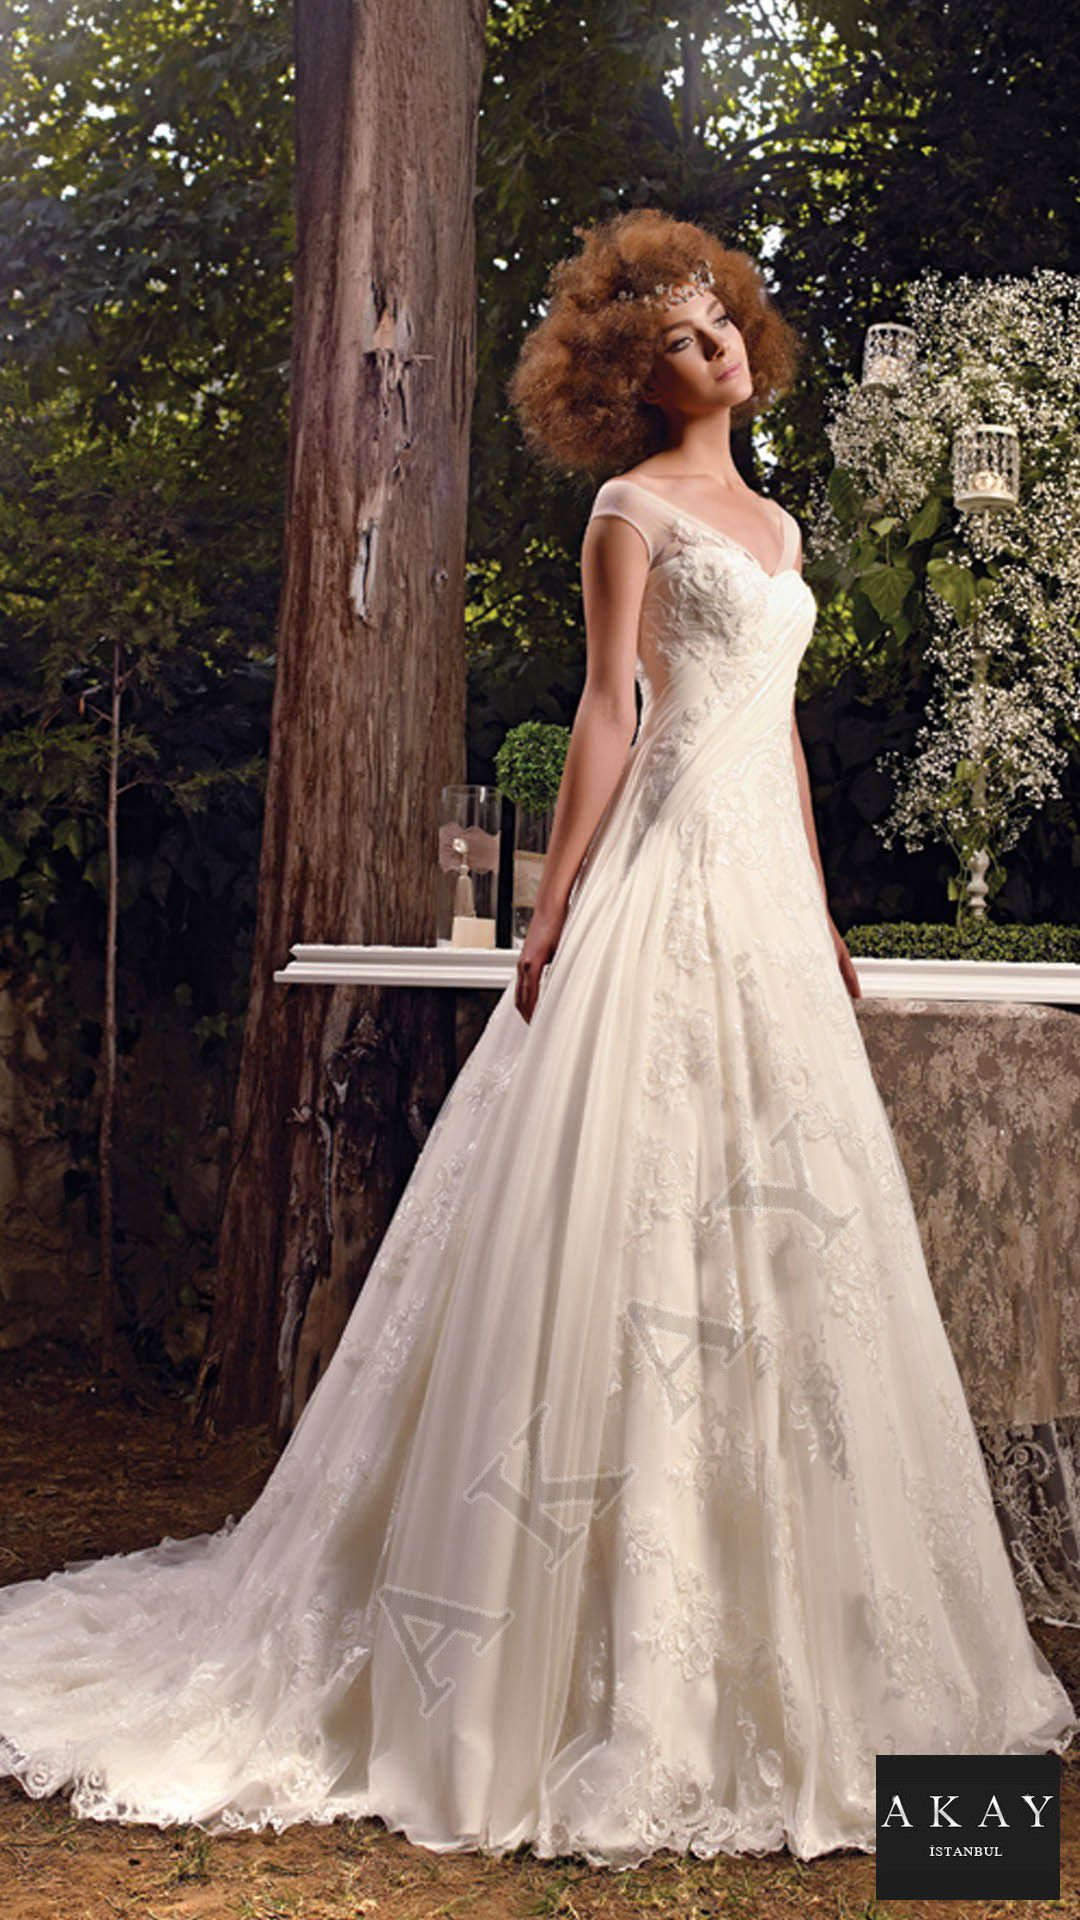 Akay Wedding Dresses Collection Bridal dresses 2014